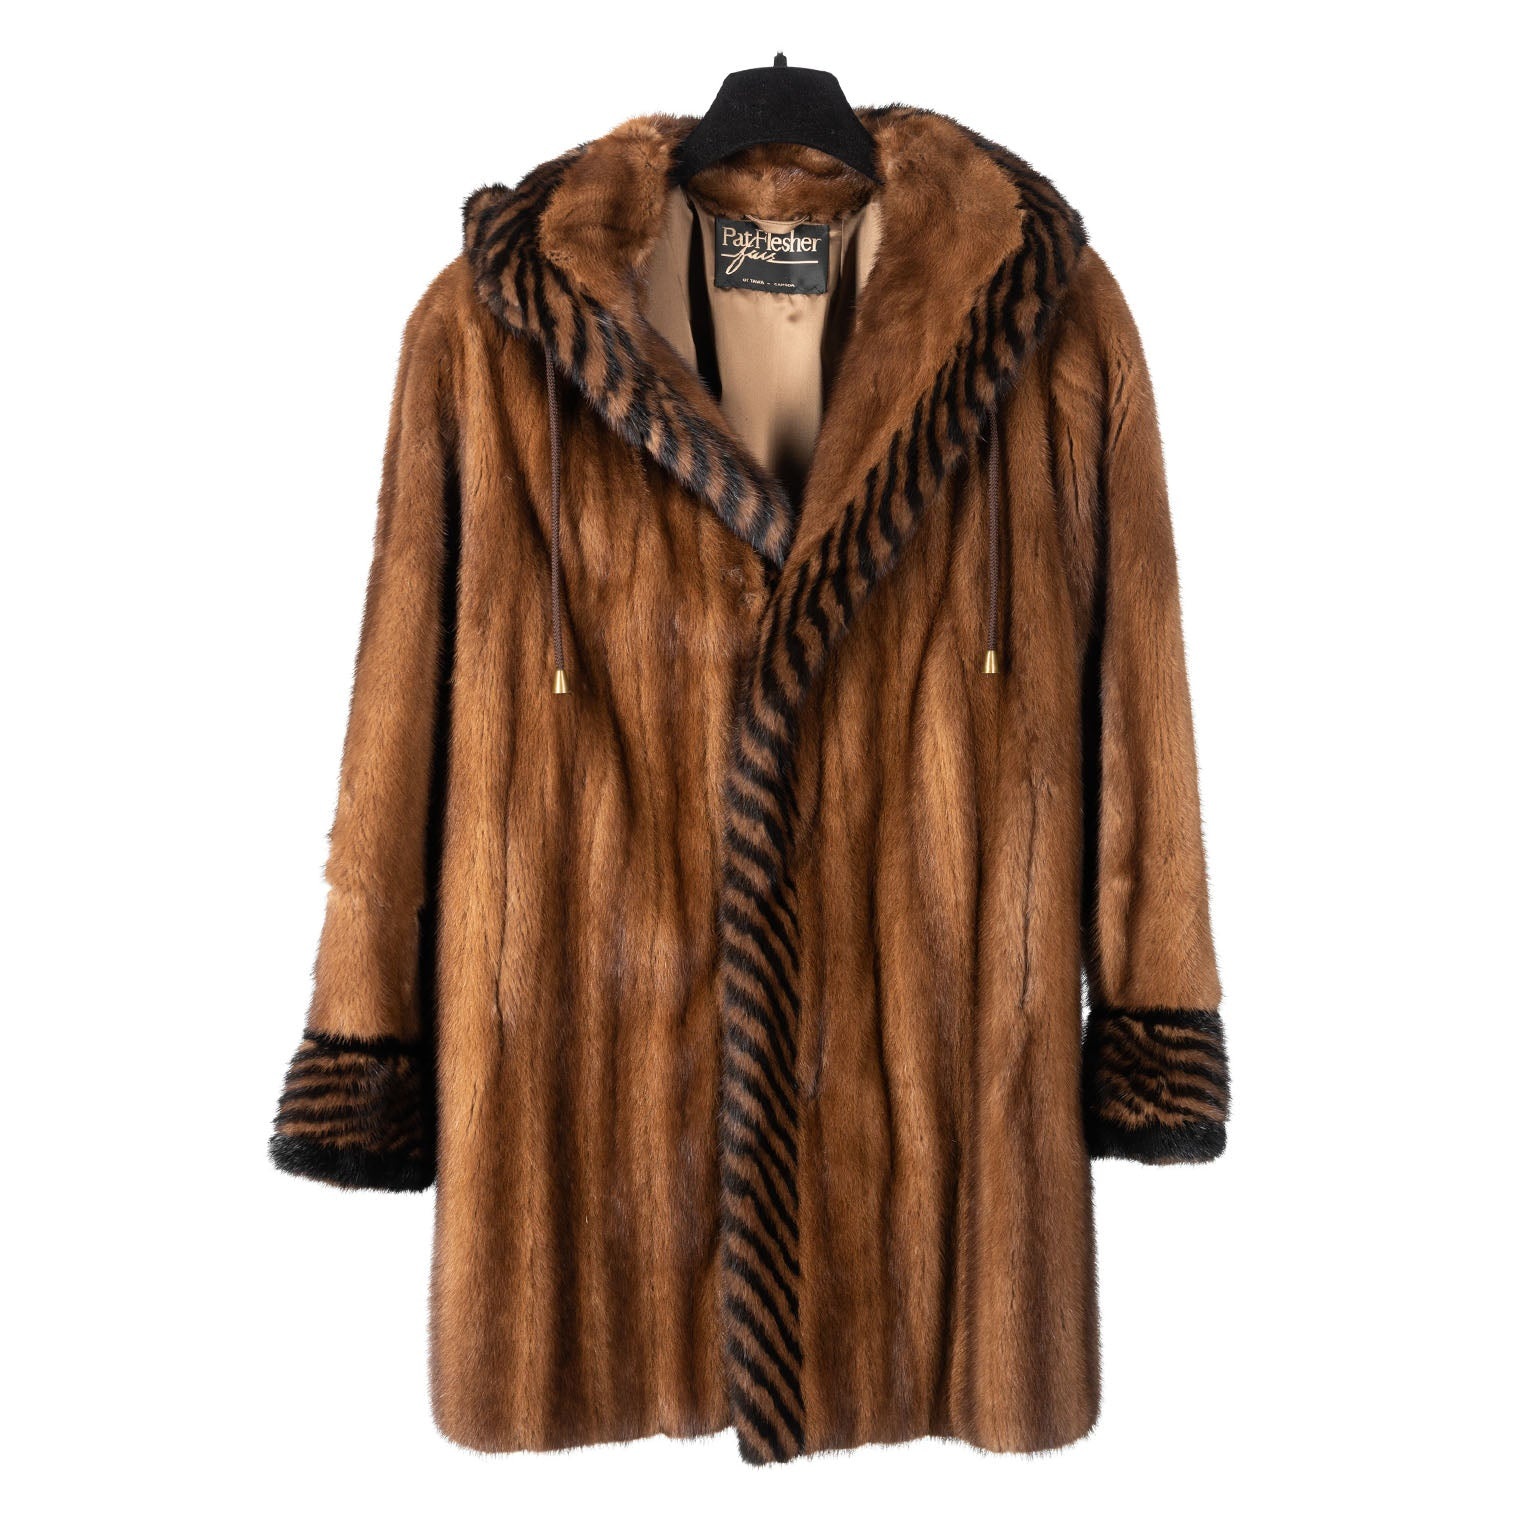 Demi Buff Mink Car Coat with Two Tone Rope Design & Detachable Hood